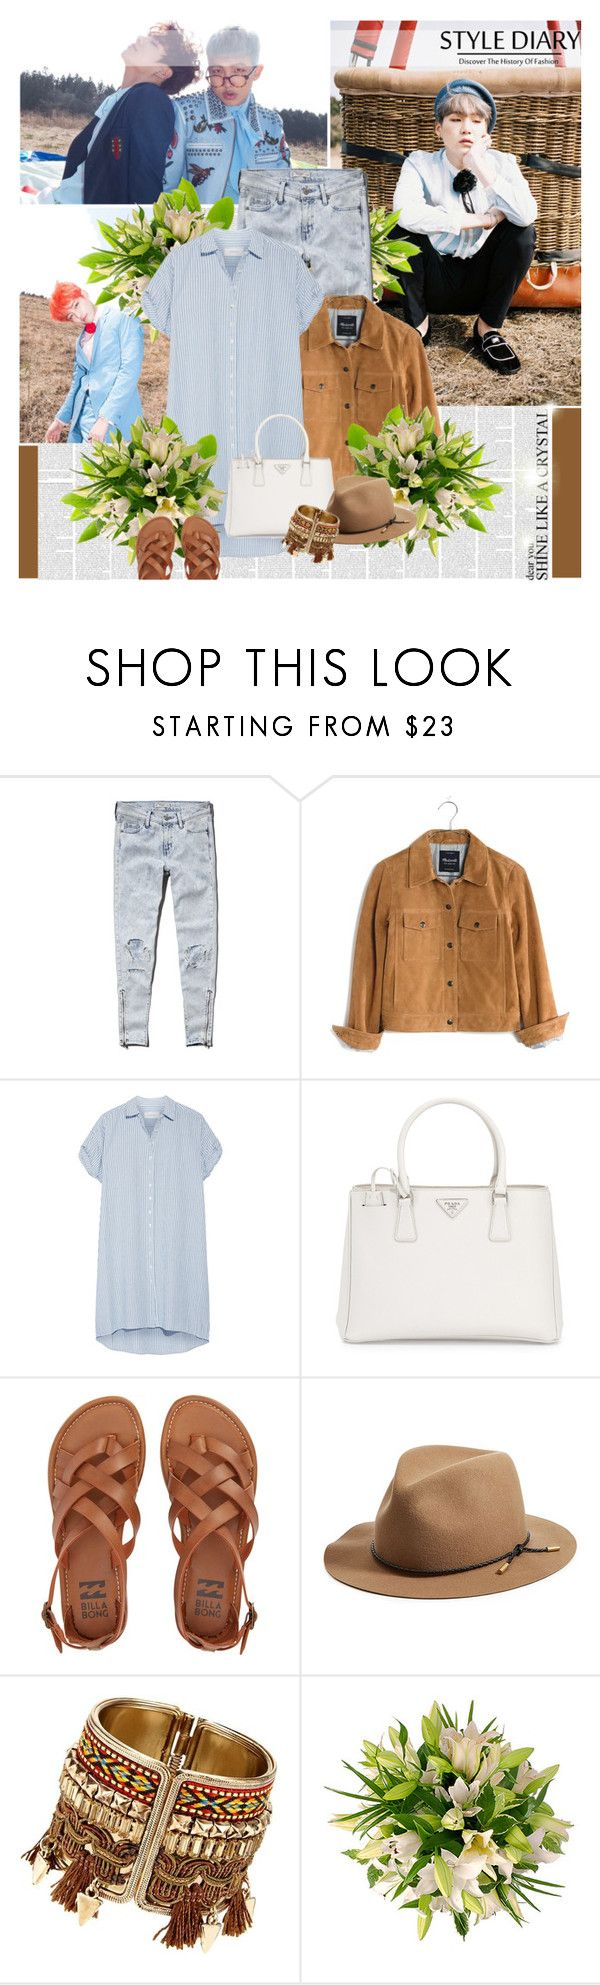 """""""Forever ever ever, we are young"""" by lisannevicious ❤ liked on Polyvore featuring Abercrombie & Fitch, Madewell, The Great, Prada, Billabong and rag & bone"""